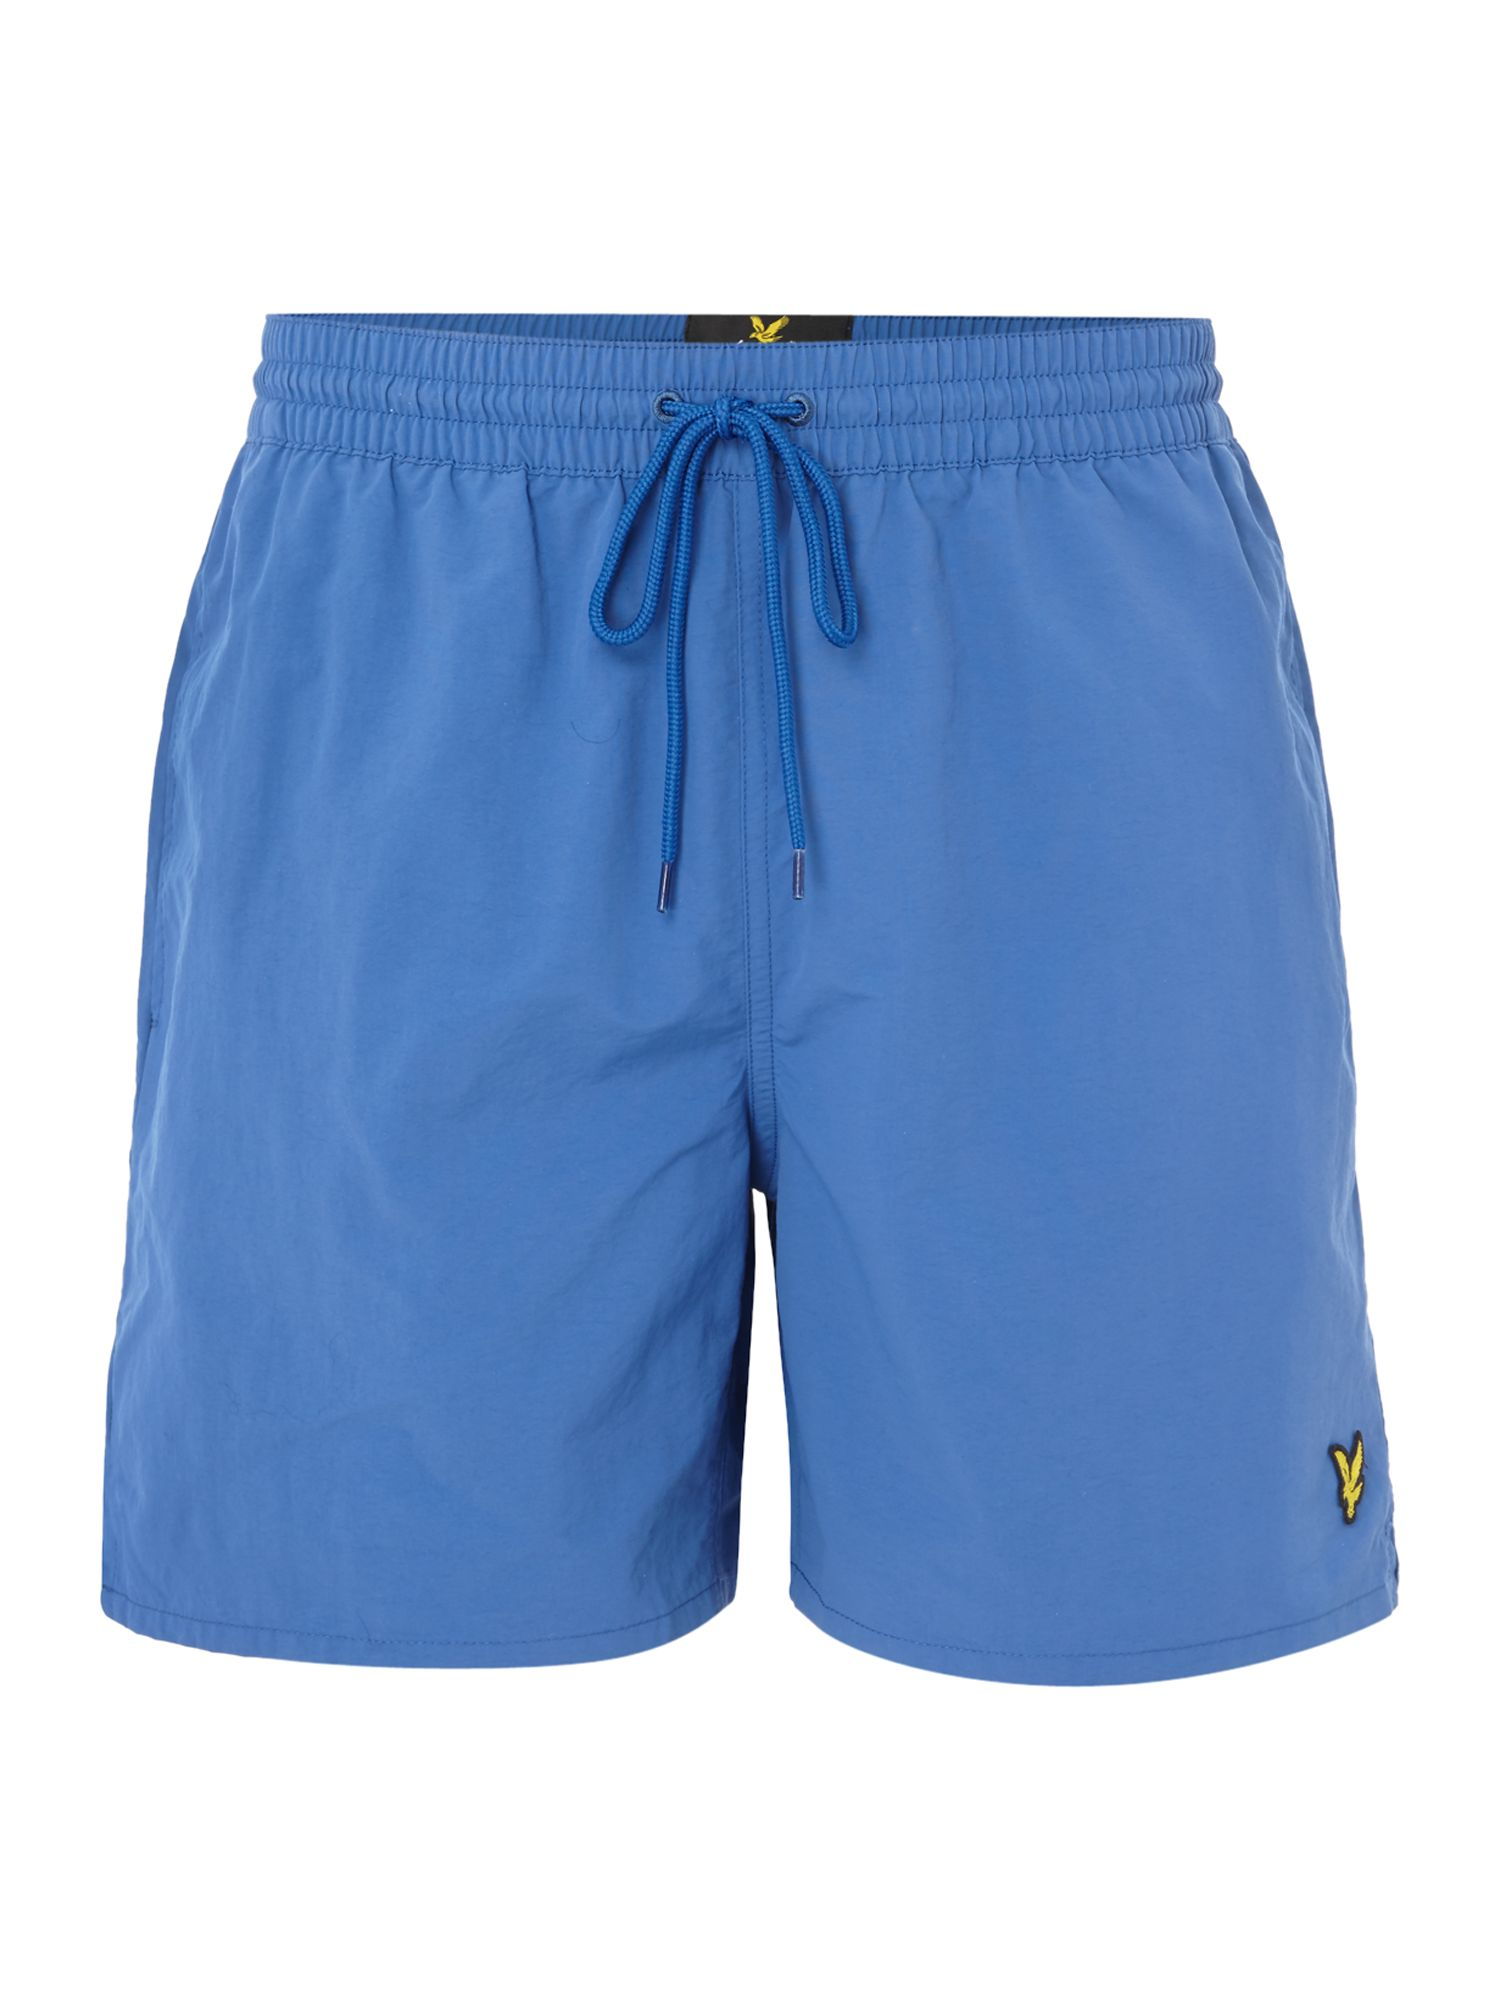 Men's Lyle and Scott Classic Plain Logo Short, Royal